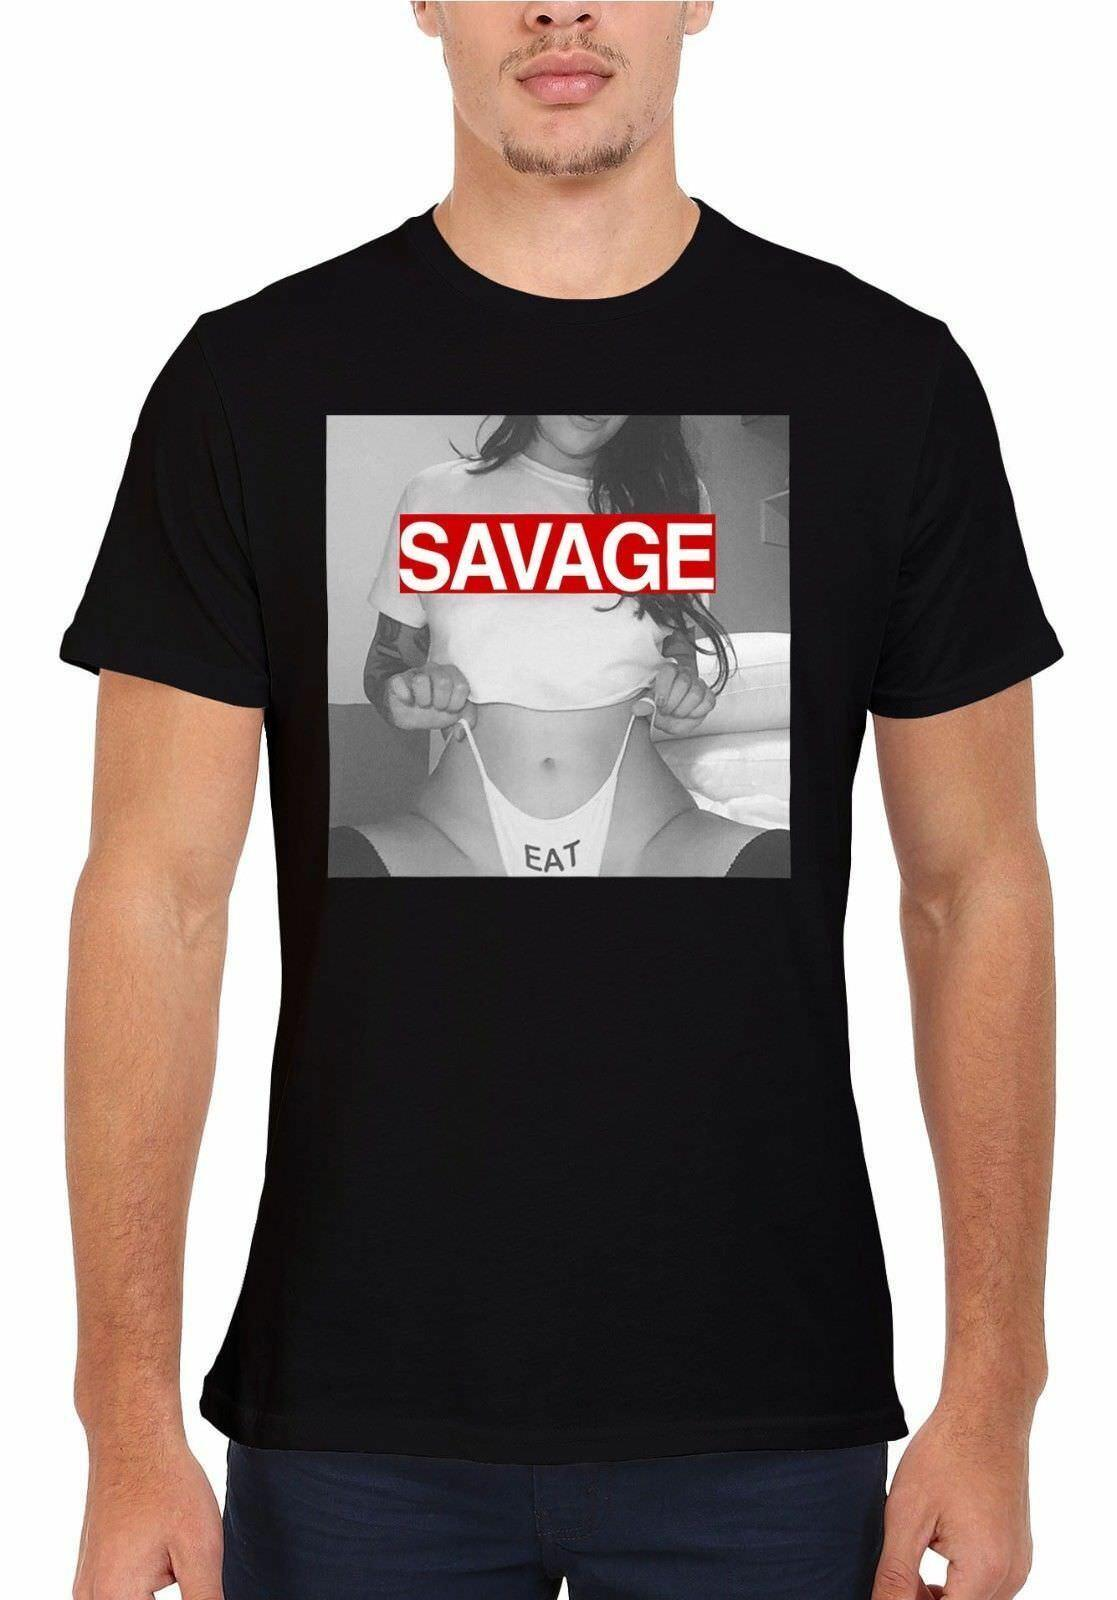 Sexy Savage Hot Eat Girl Lady Unisexe T Shirt Funny expédition gratuite Unisexe Casual top